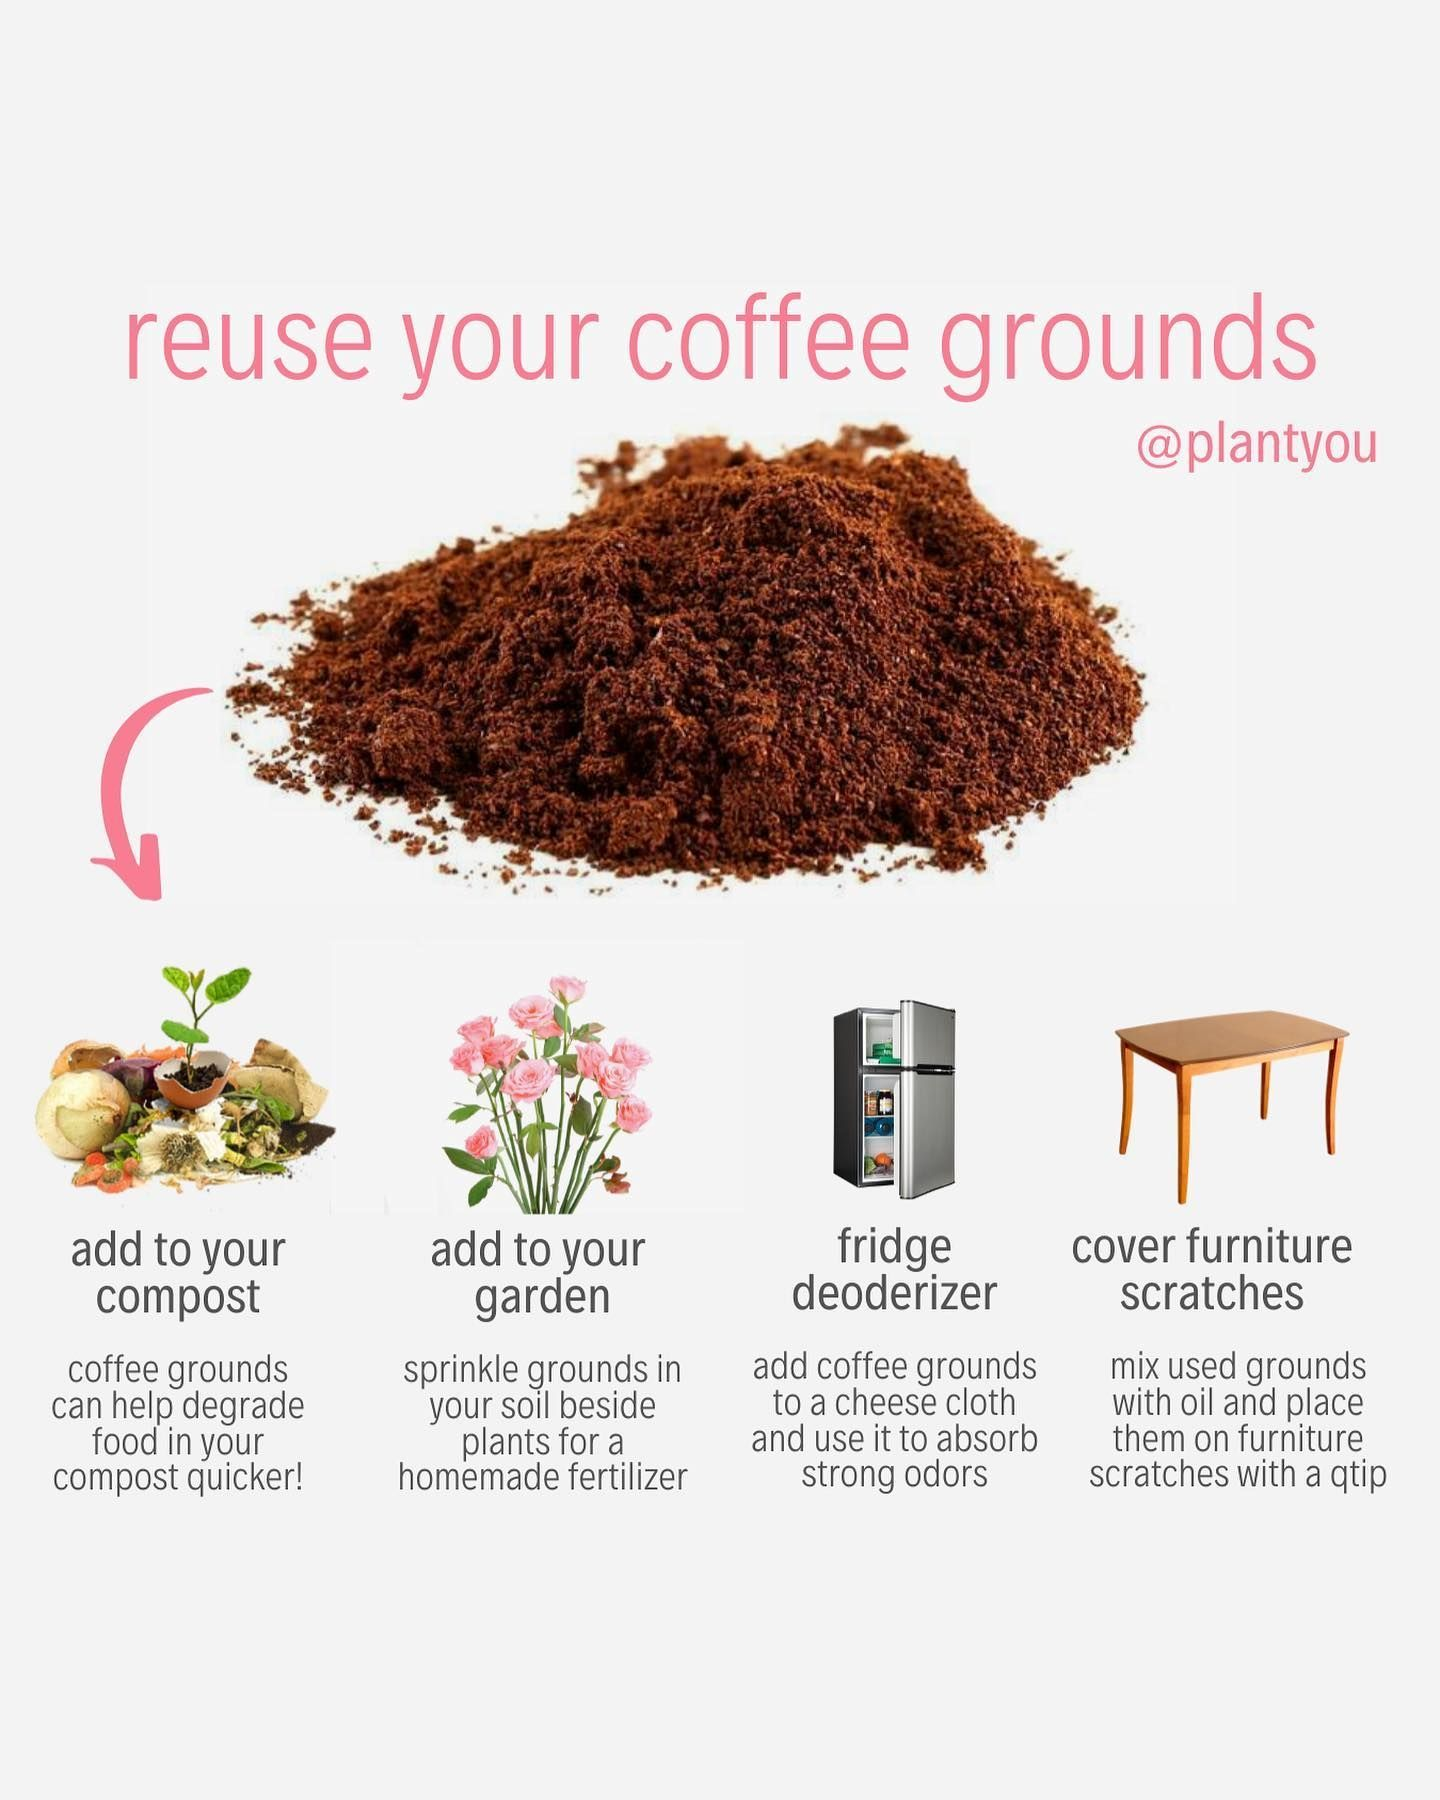 13+ What can you do with used coffee grounds ideas in 2021